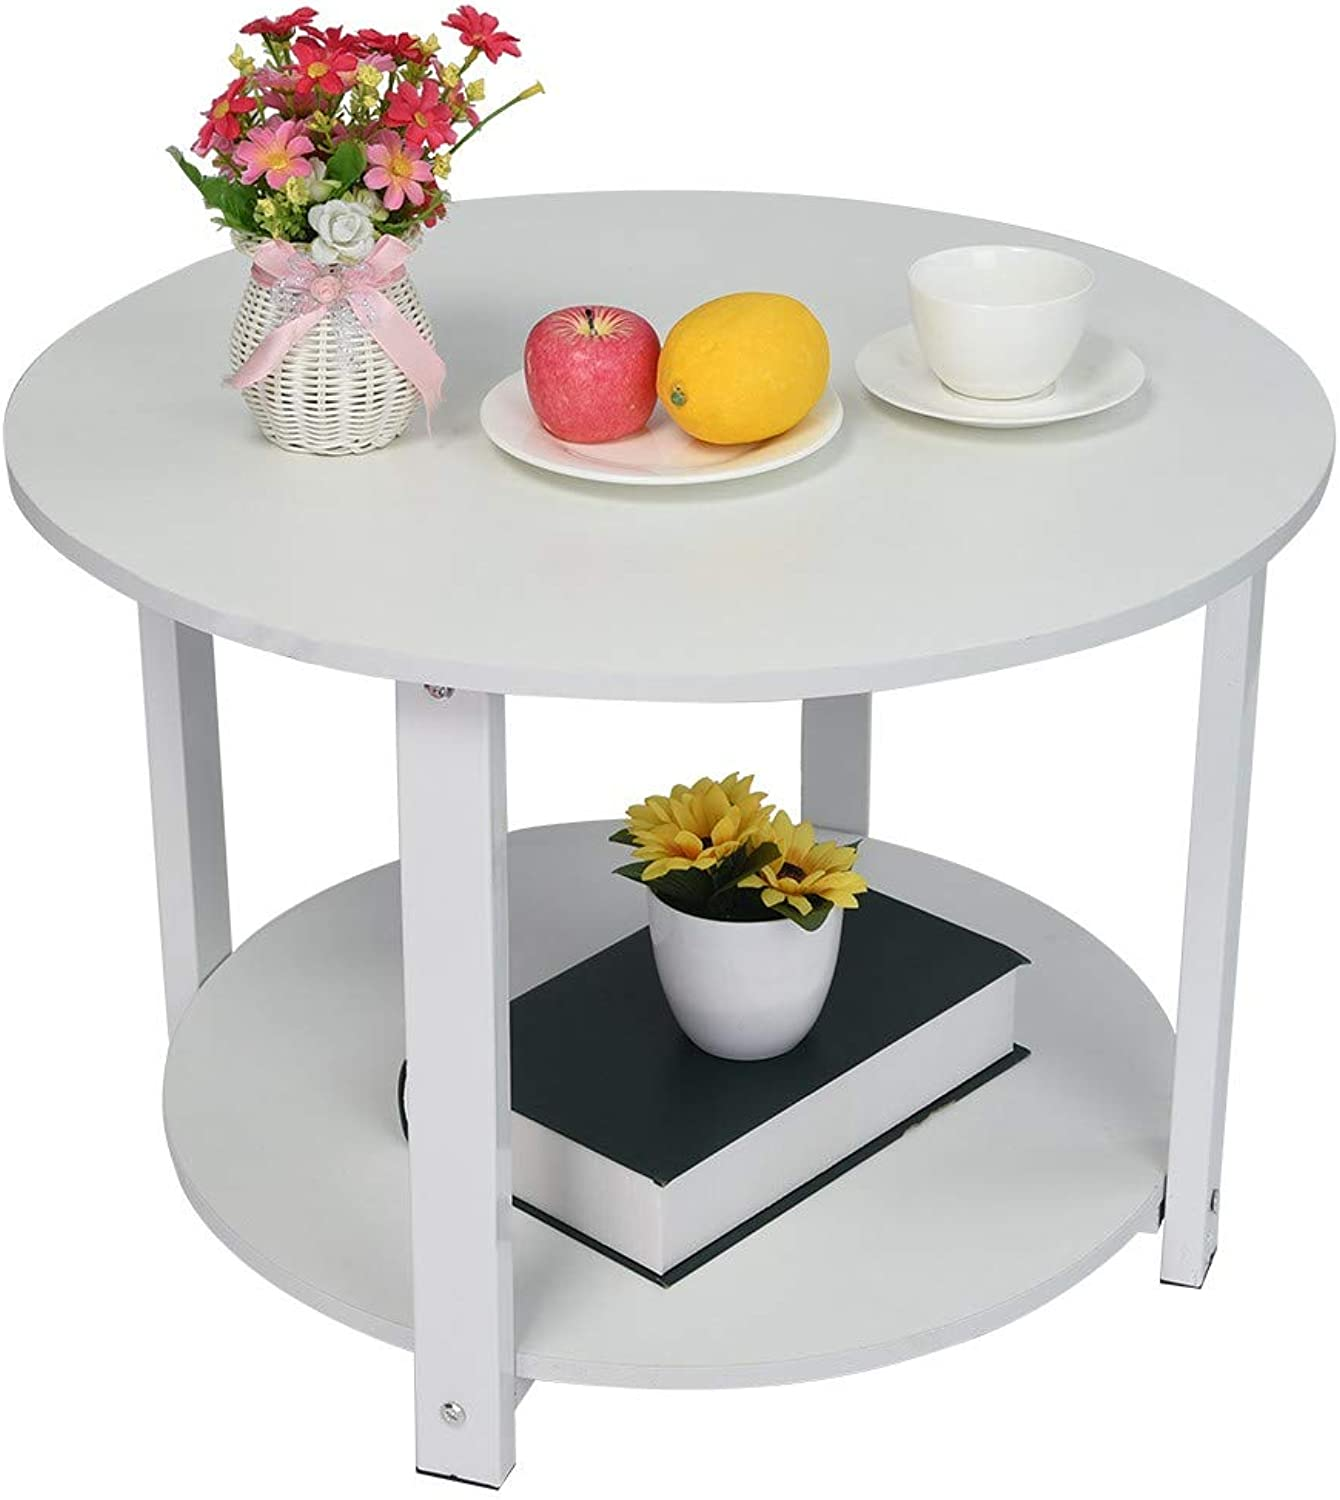 Clearance  Coffee Table,Fheaven Double Layer Round Storage Sofa Bedside End Table Bedroom Night Table Lower Shelf for Living Room